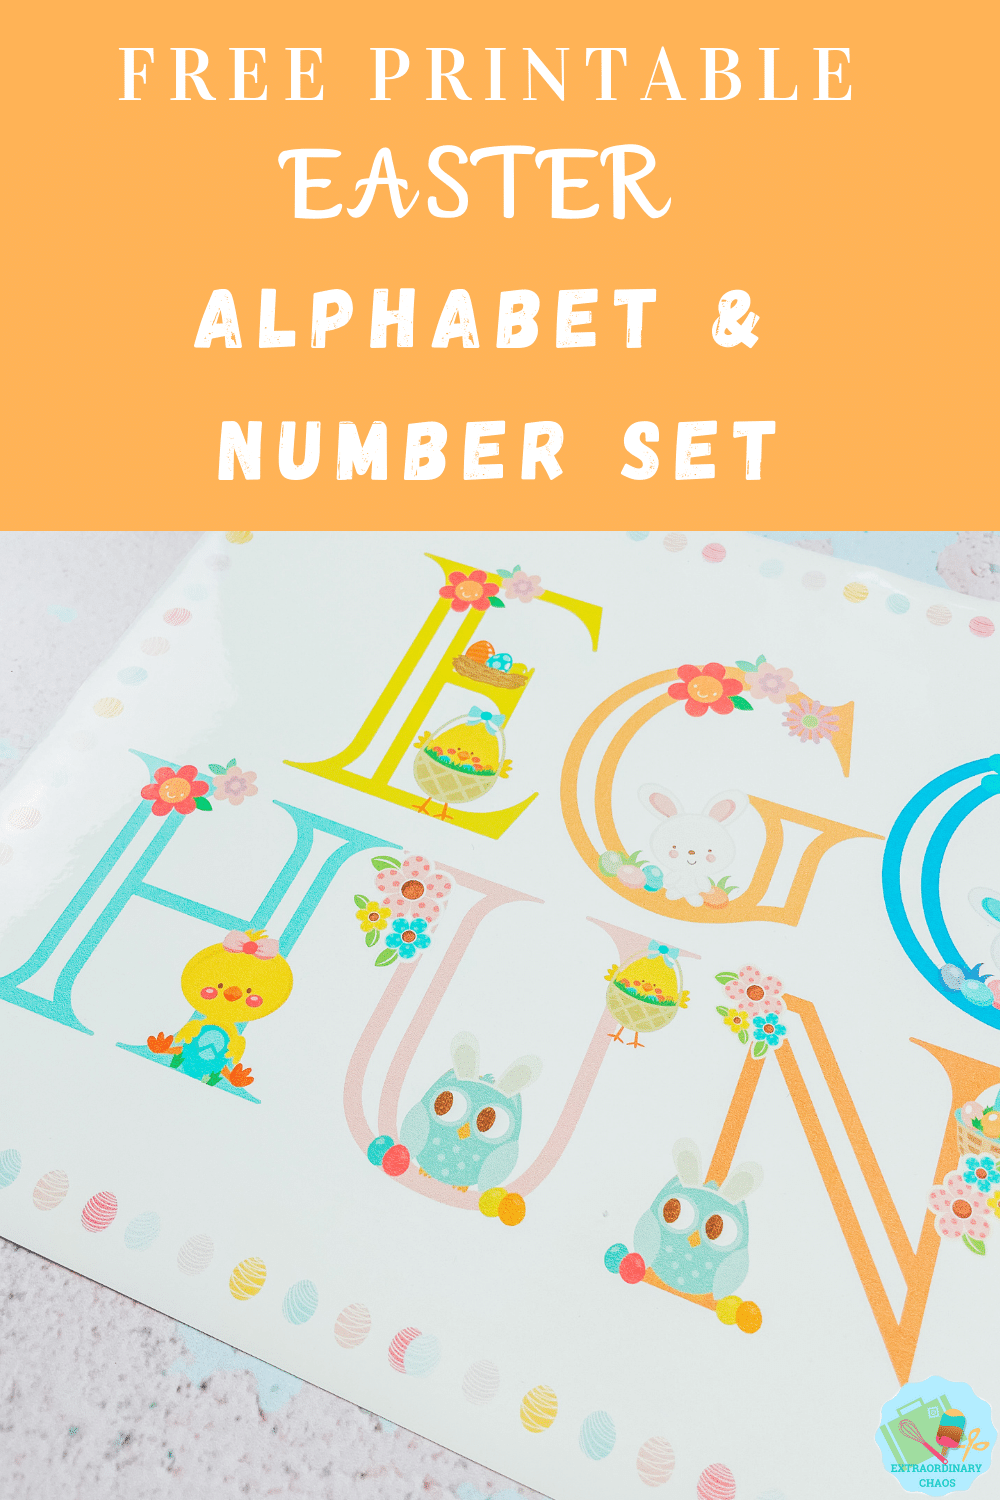 Free printable Easter Alphabet fro Cricut Easter Projects , sublimation, print and cut and crafts for kids